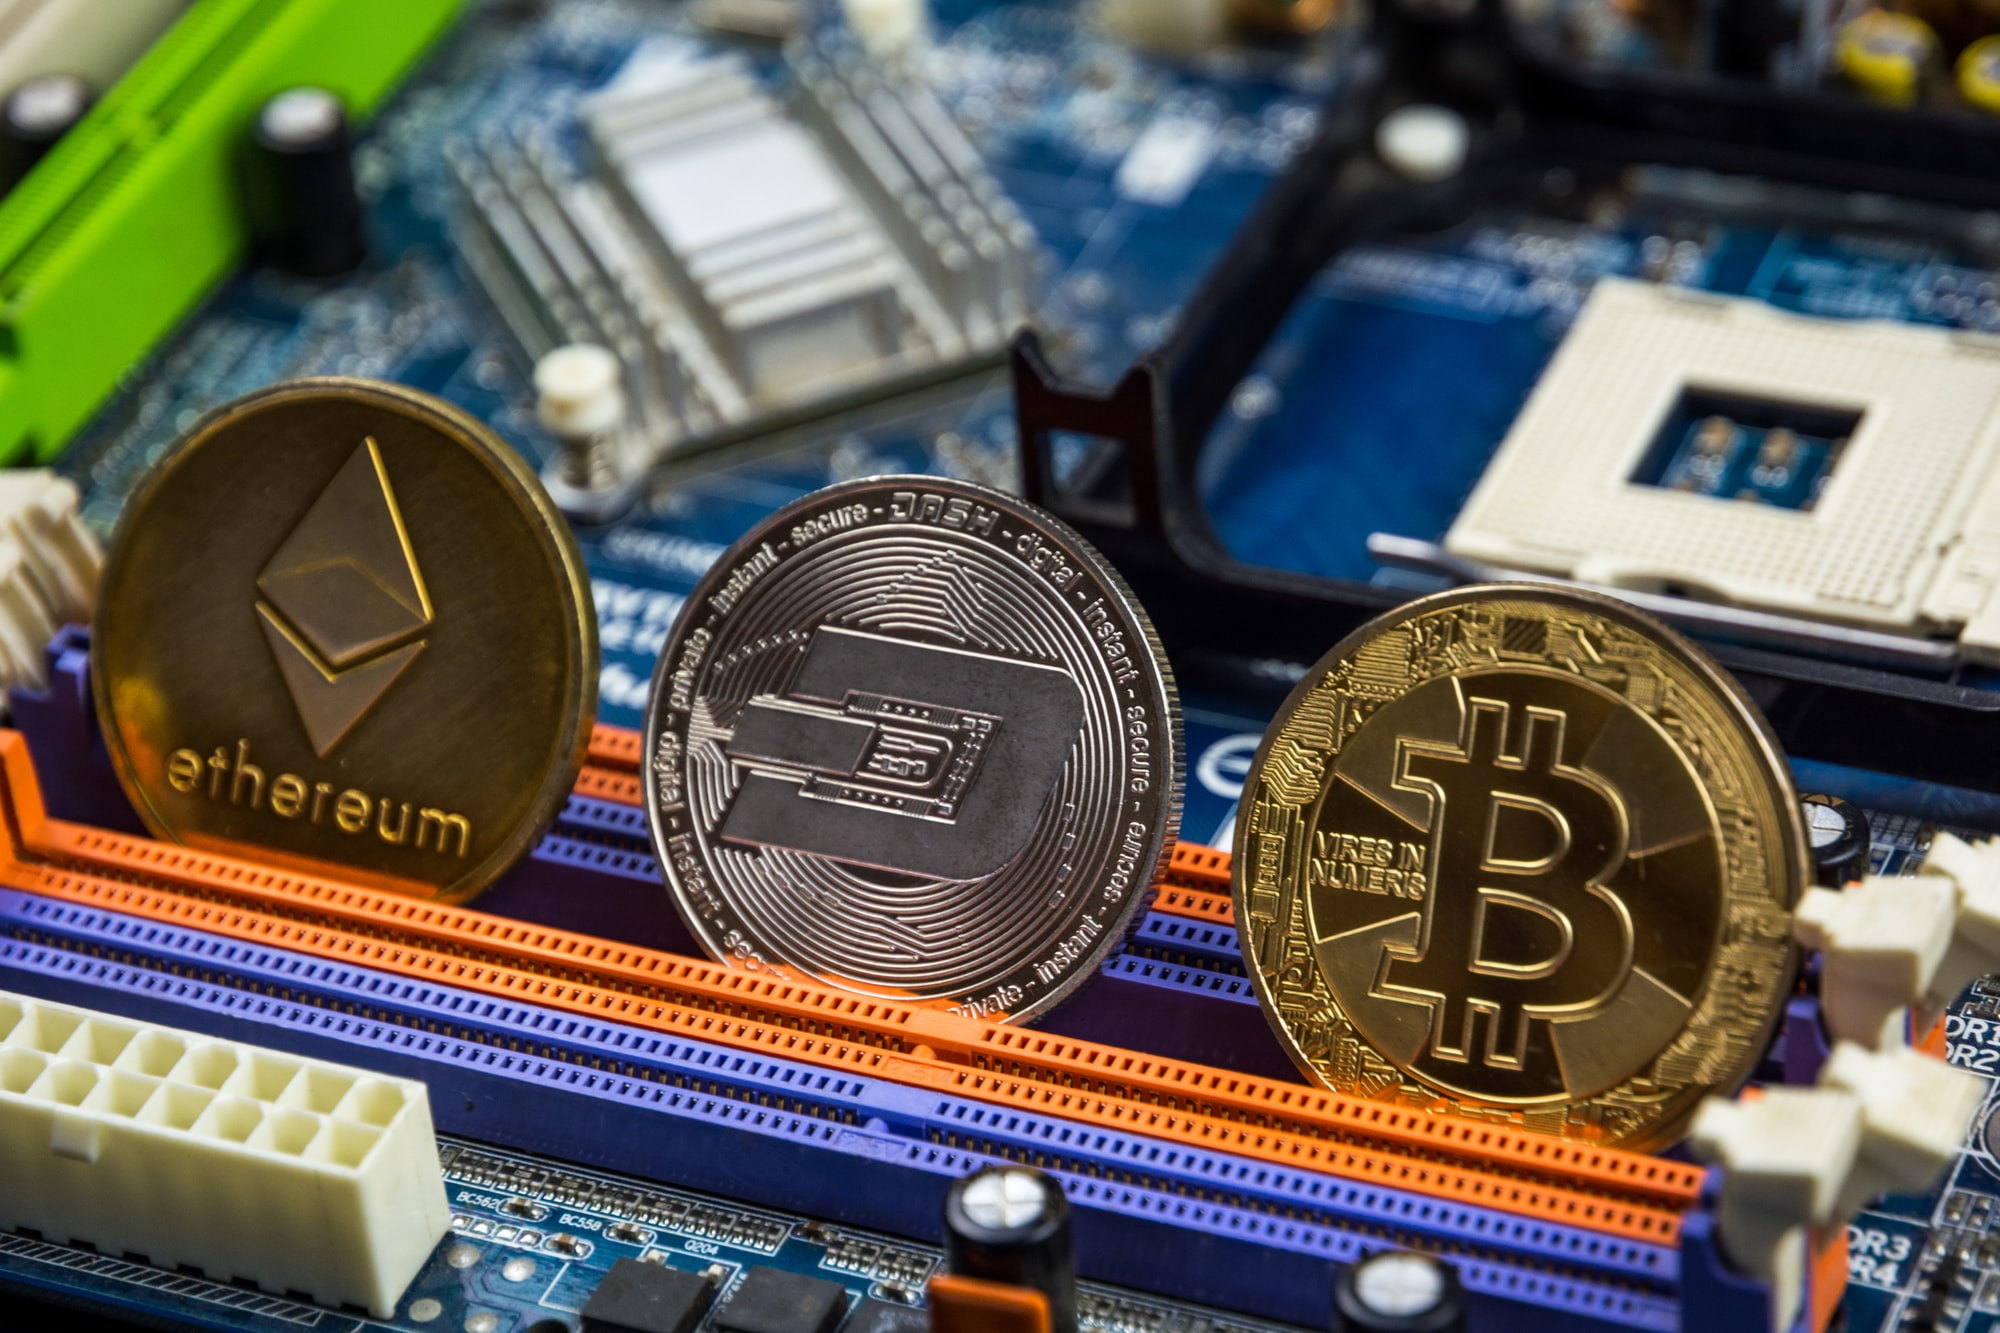 Bitcoin, Etherium, Dash coin and motherboard